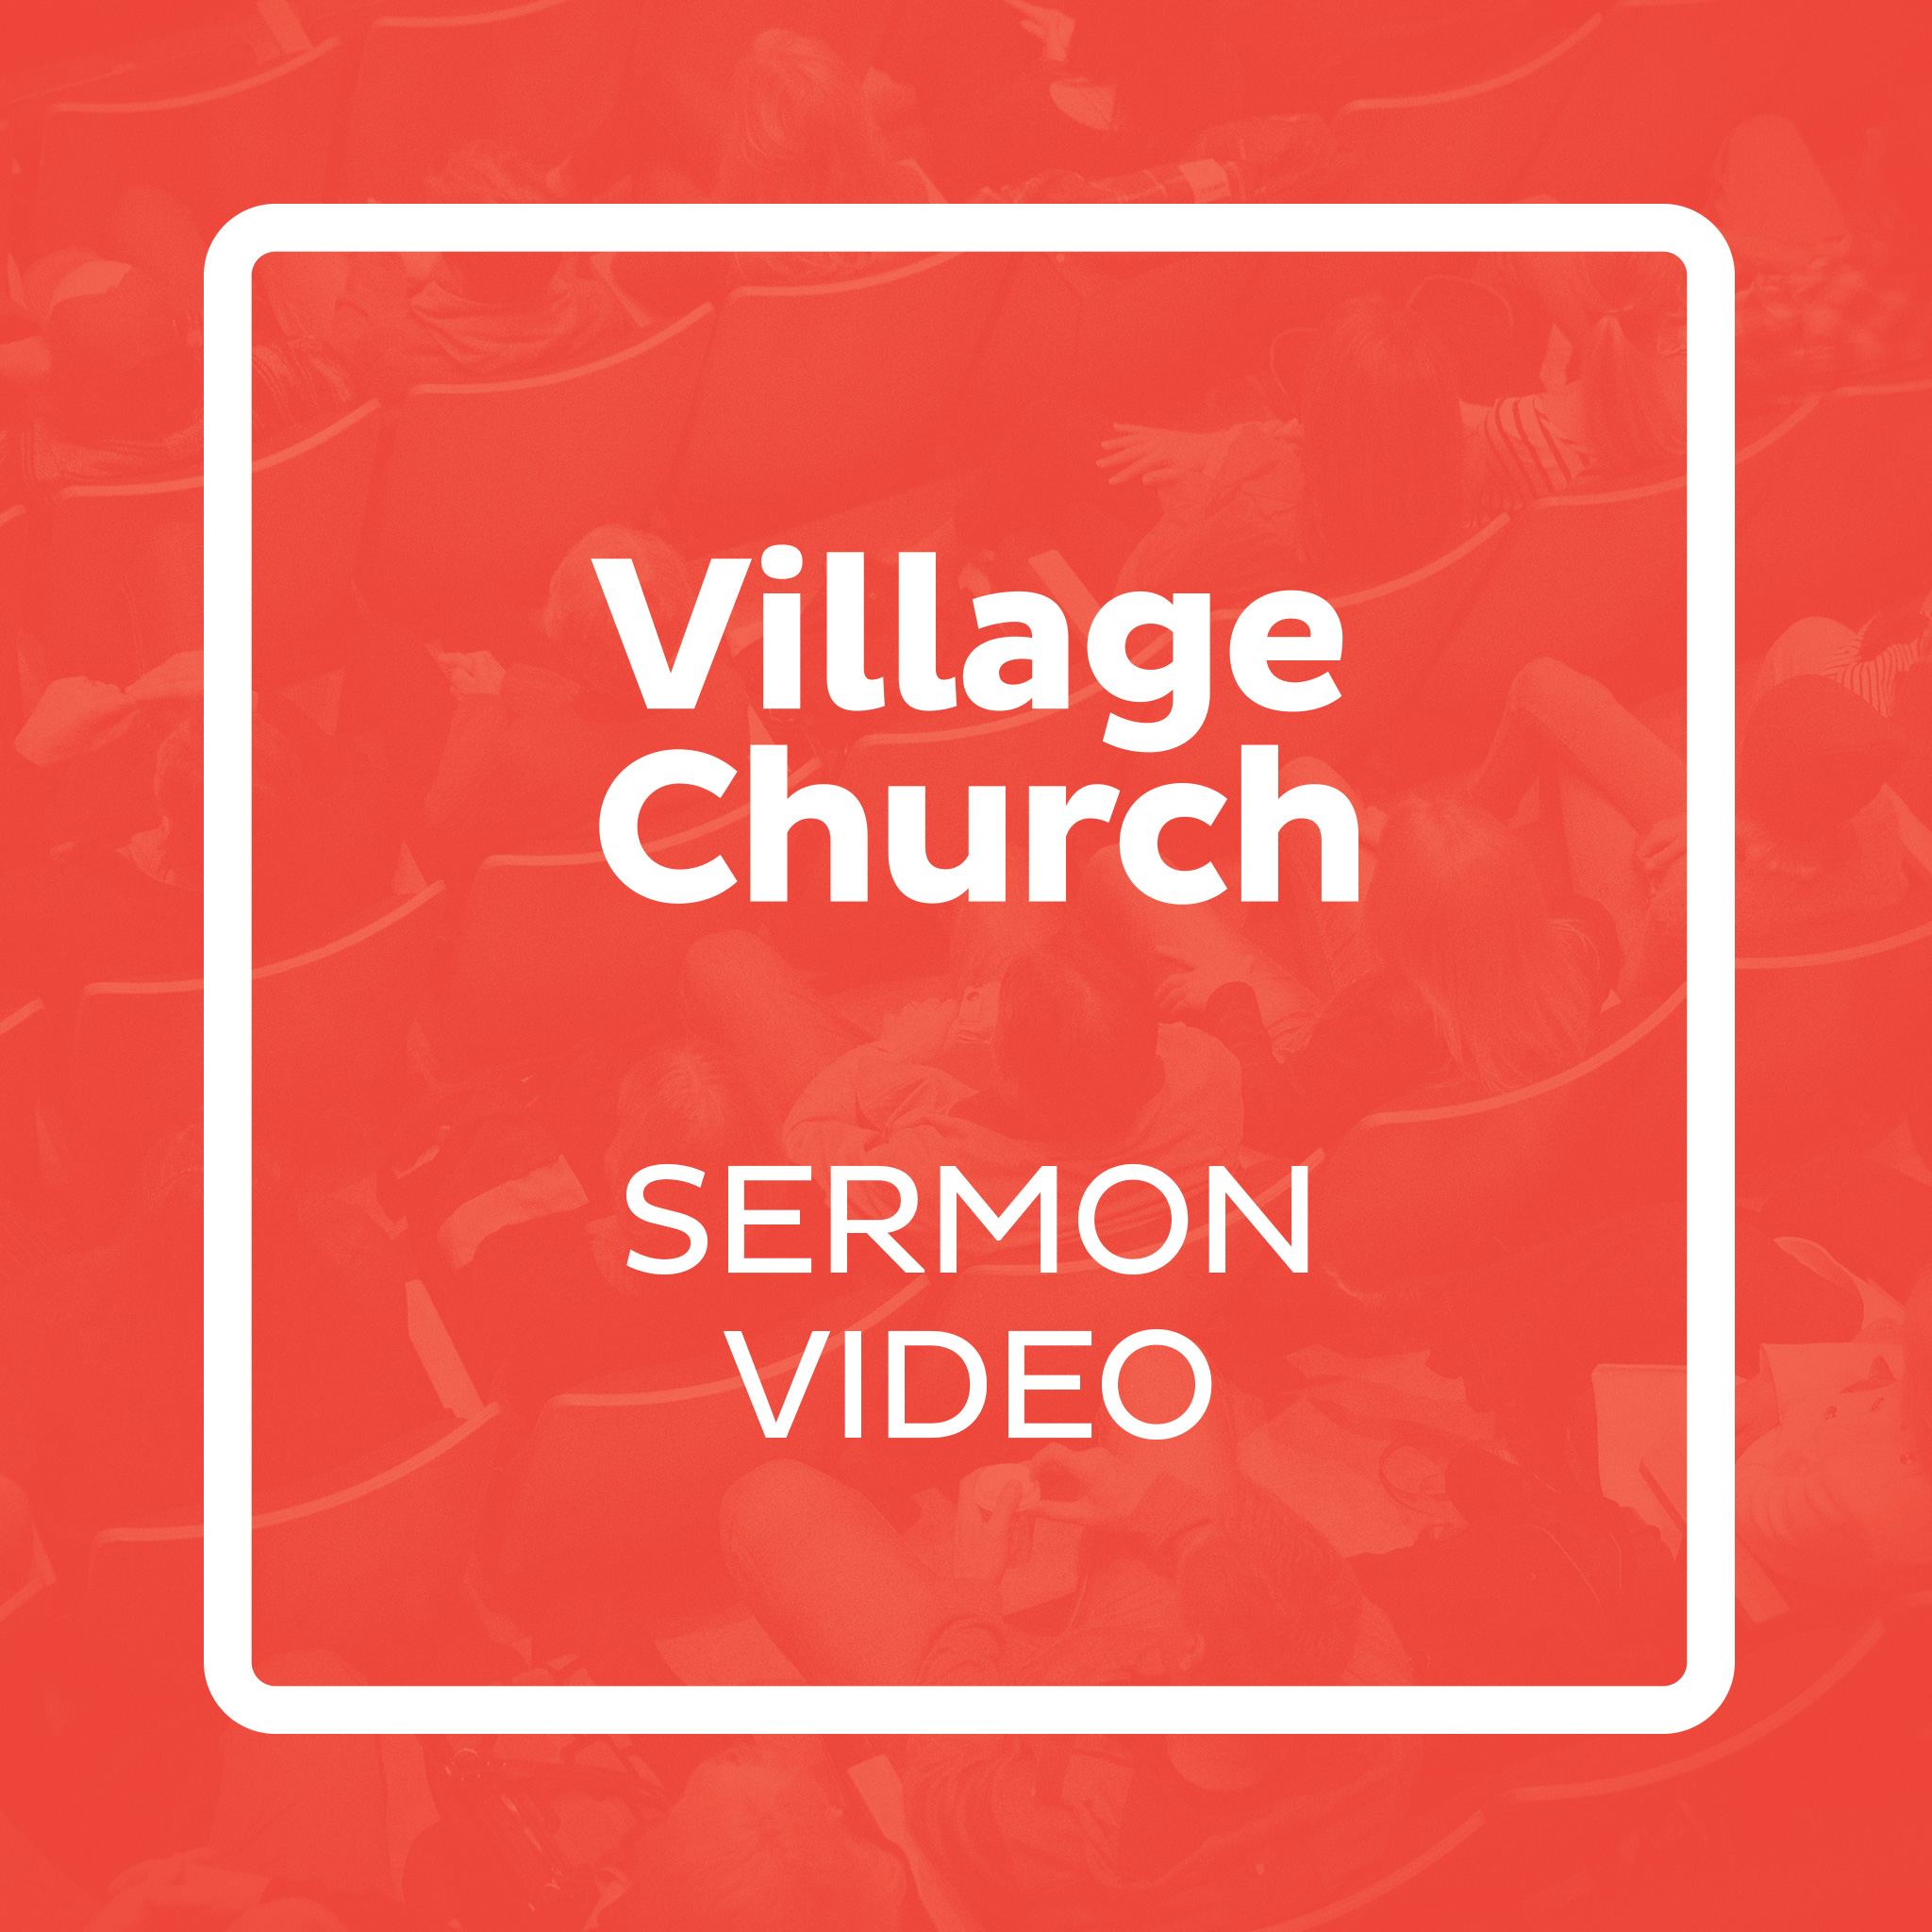 Village Church Video